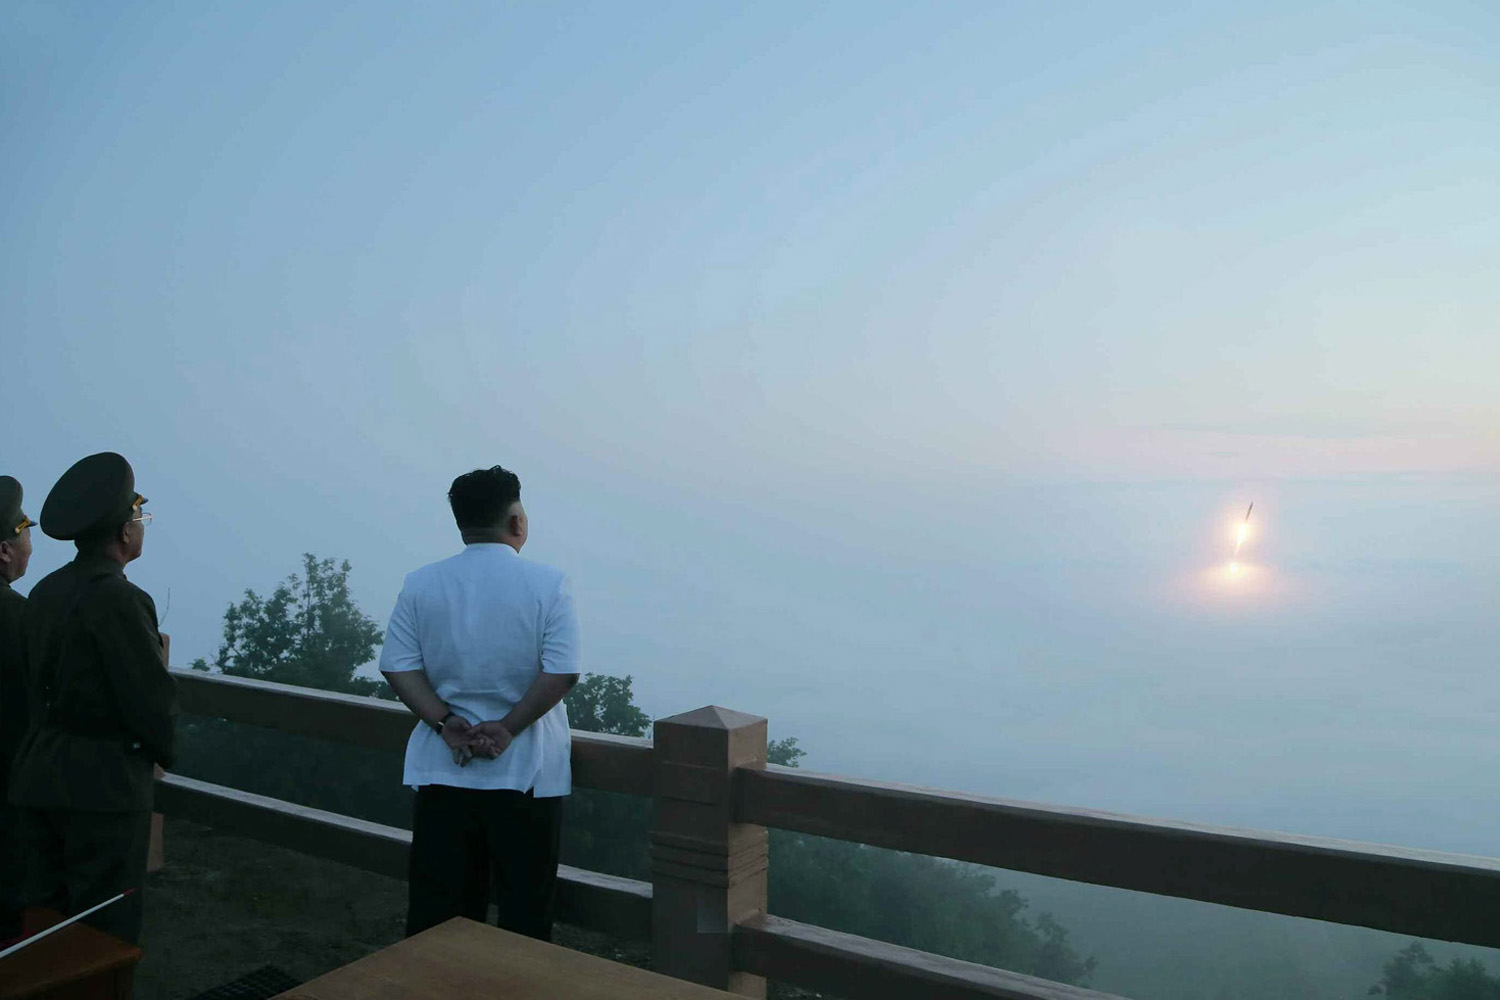 A picture released by the Rodong Sinmun, the newspaper of the ruling North Korean Workers Party released on 30 June 2014, shows North Korean leader Kim Jong-un observing a tactical rocket firing drill of the North's Strategic Force at an unidentified place.